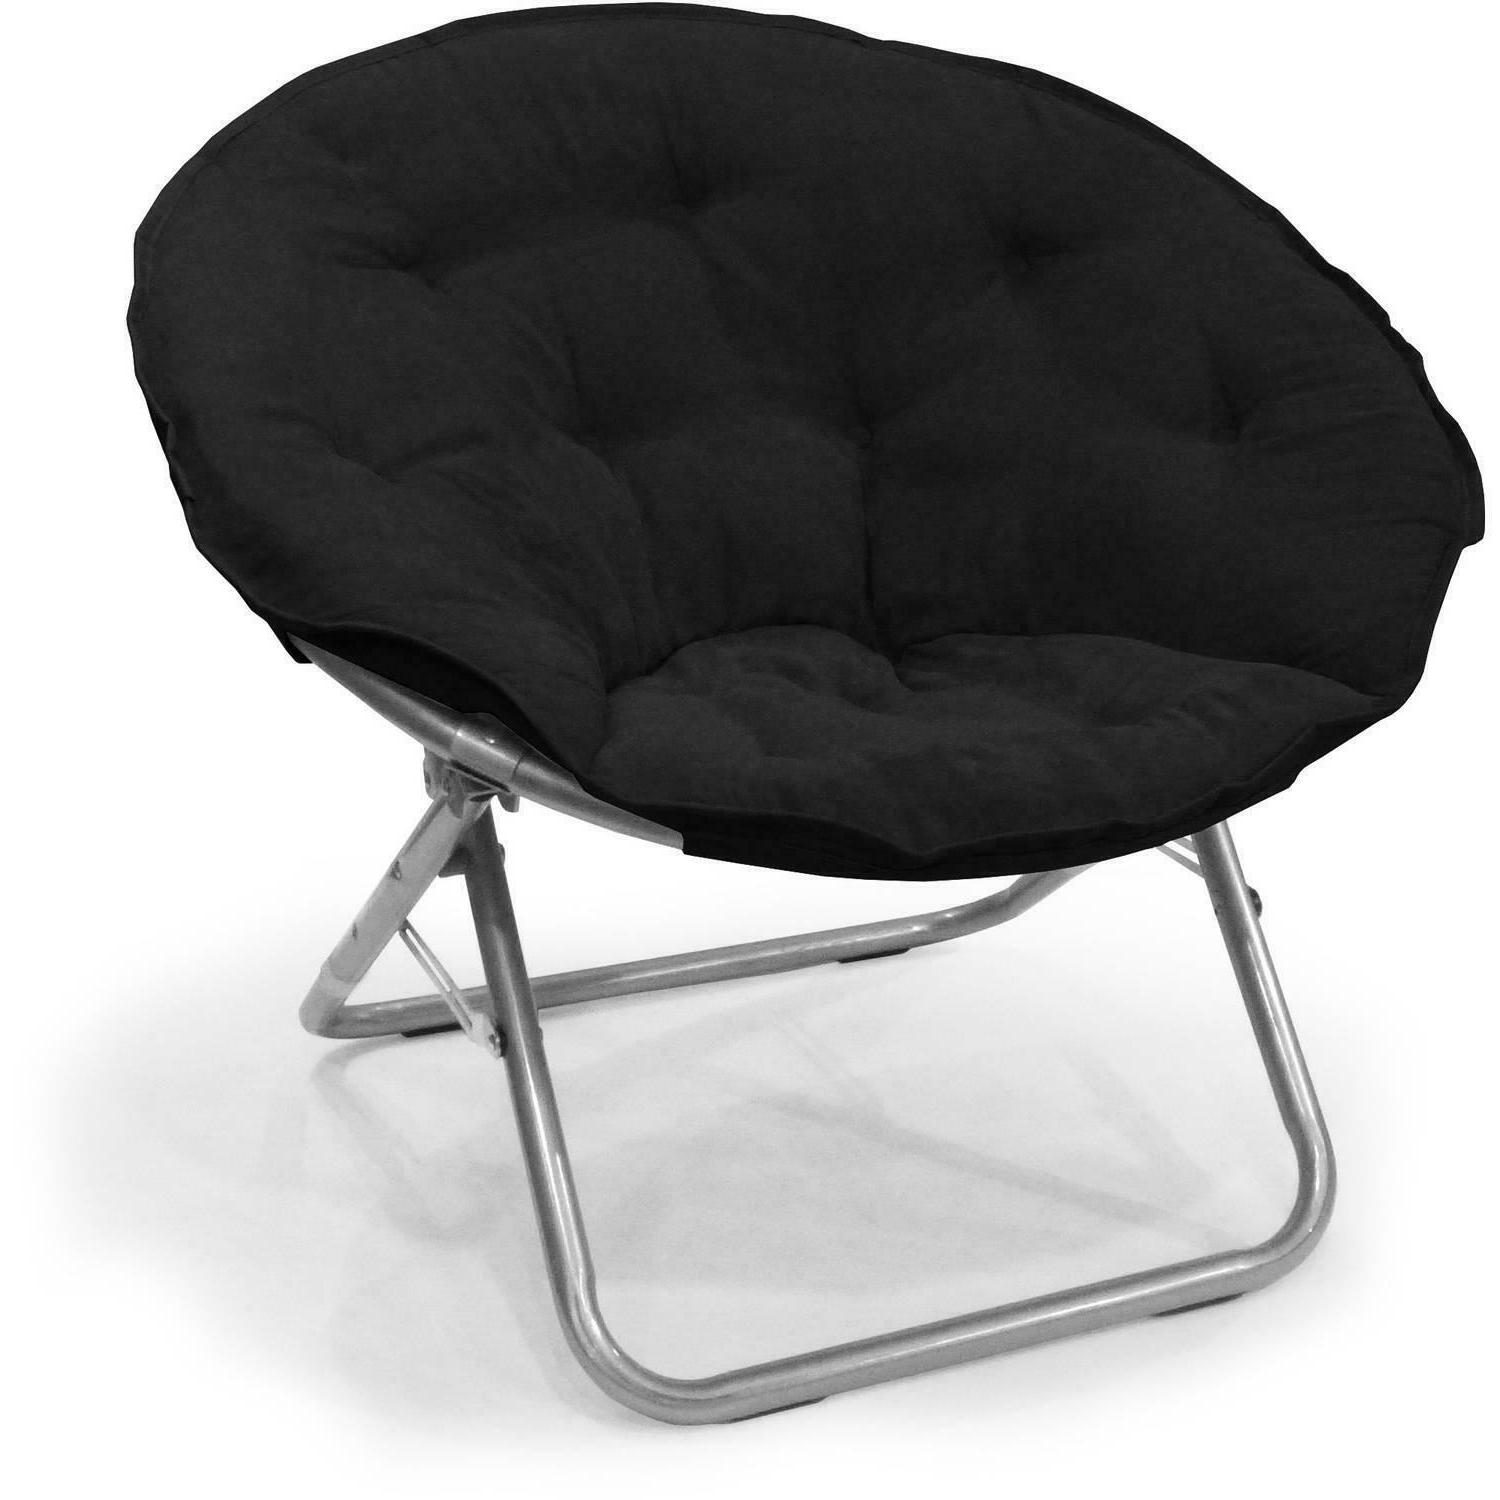 oversized moon chair seat stool saucer soft